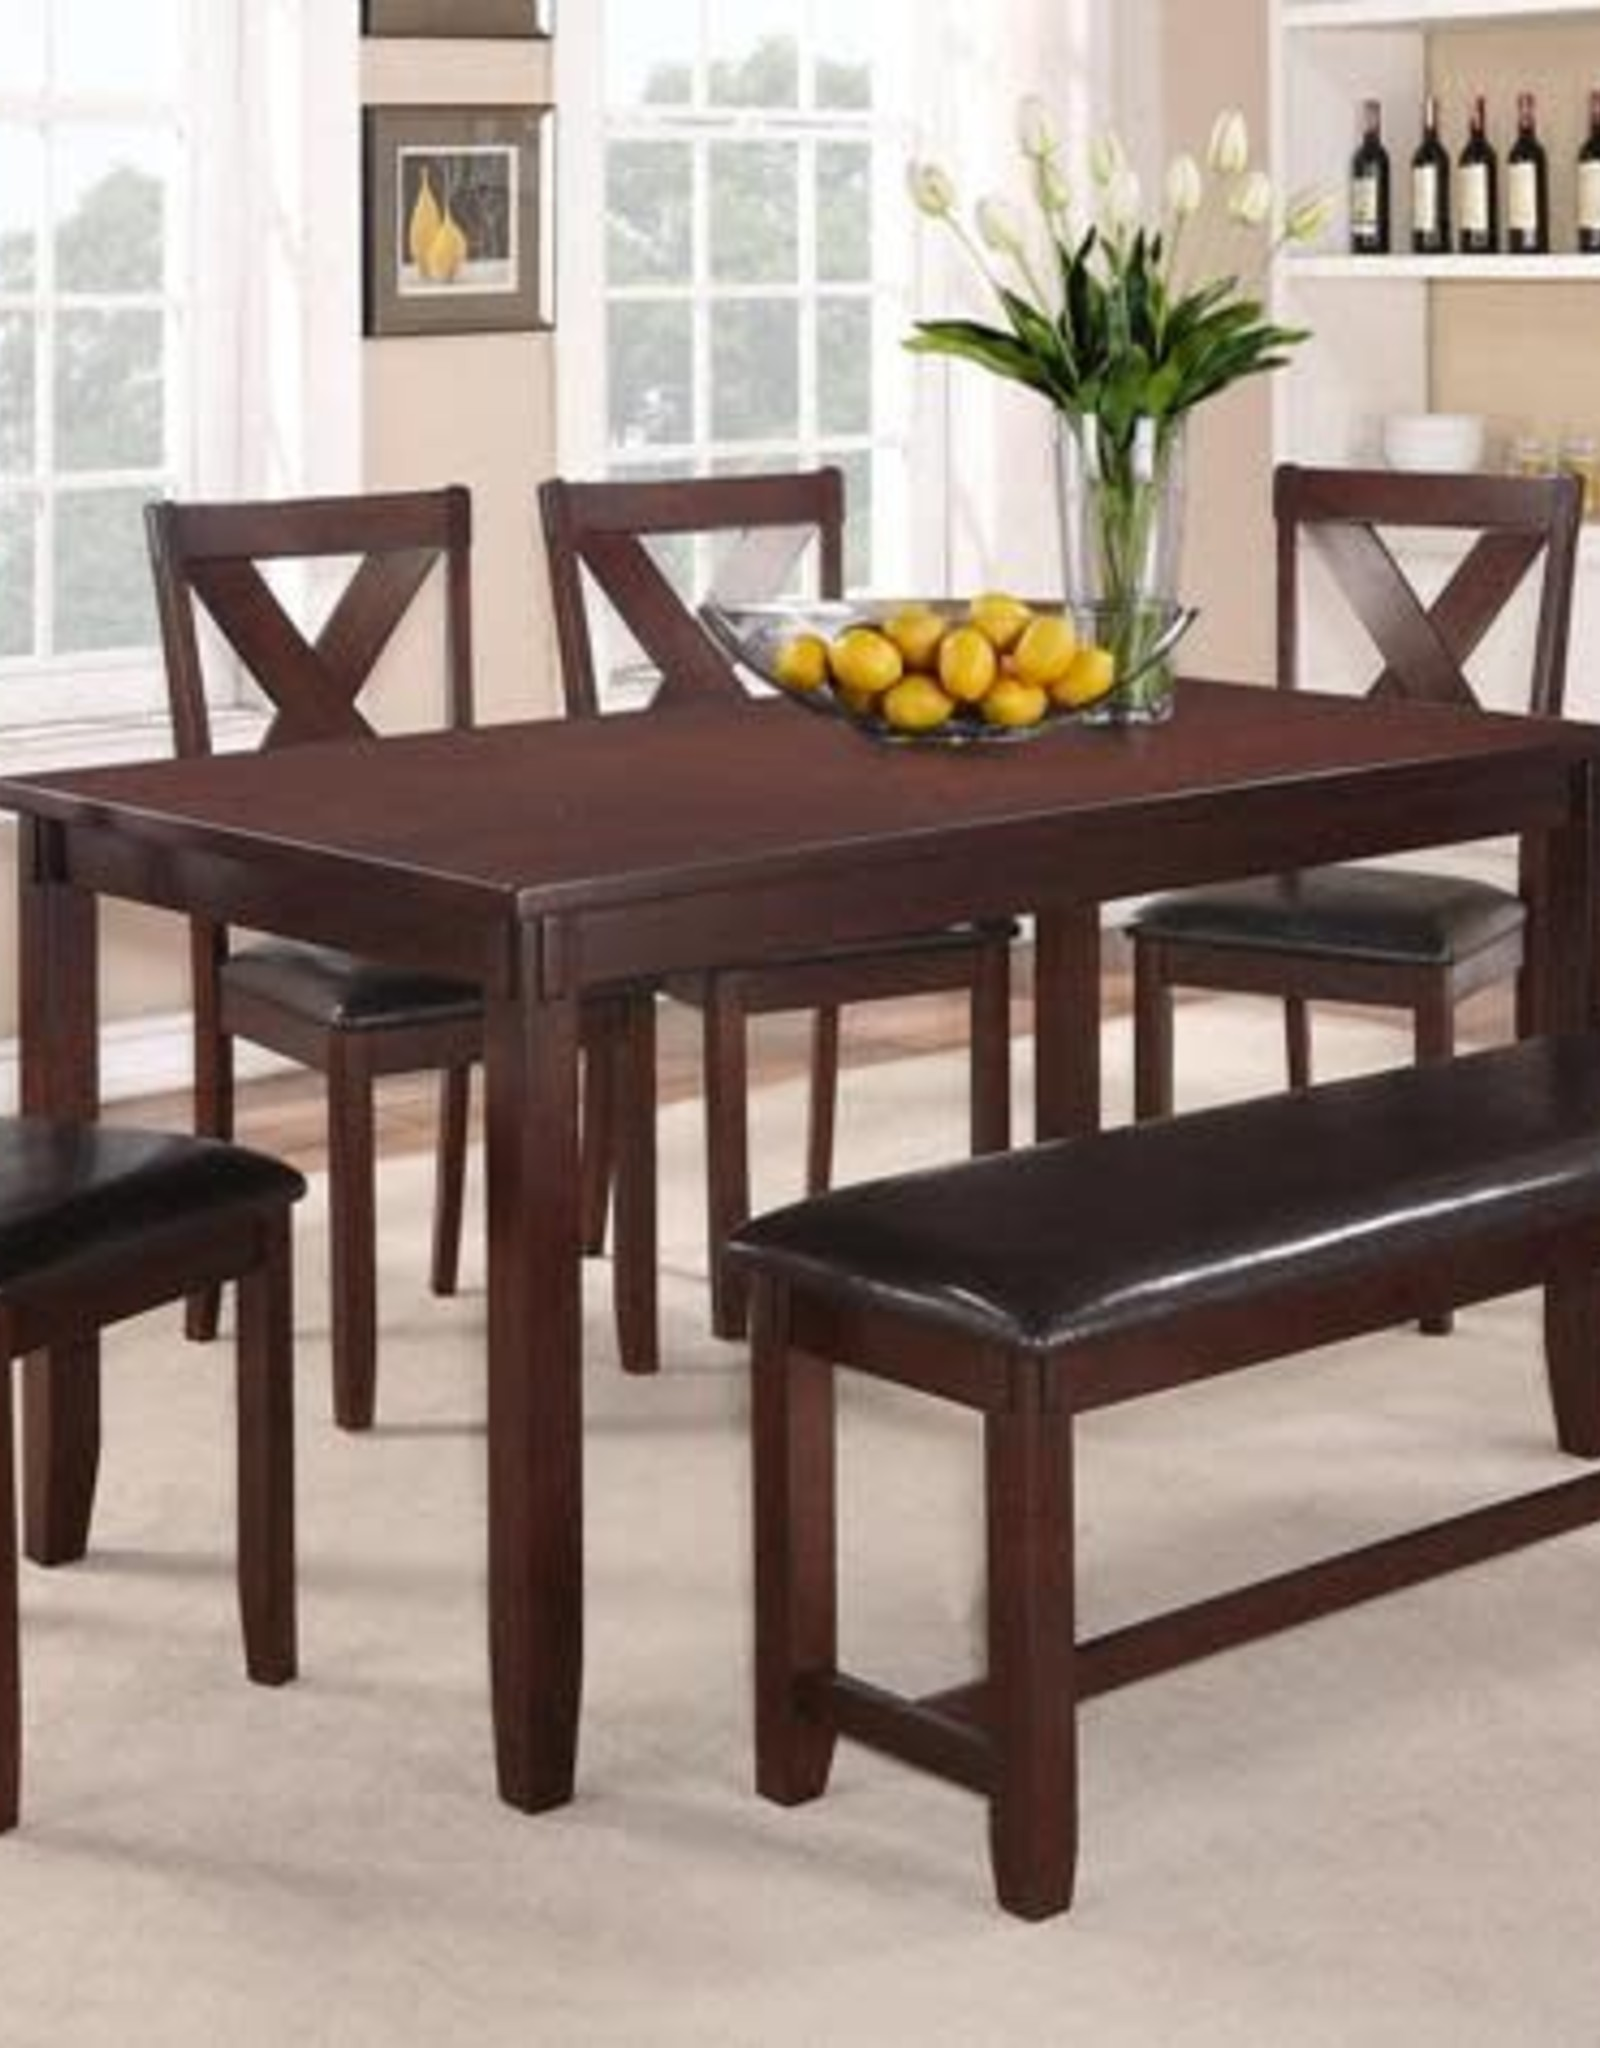 Clara Dining Table Set W 4 Chairs Espresso Bargain Box And Bunks